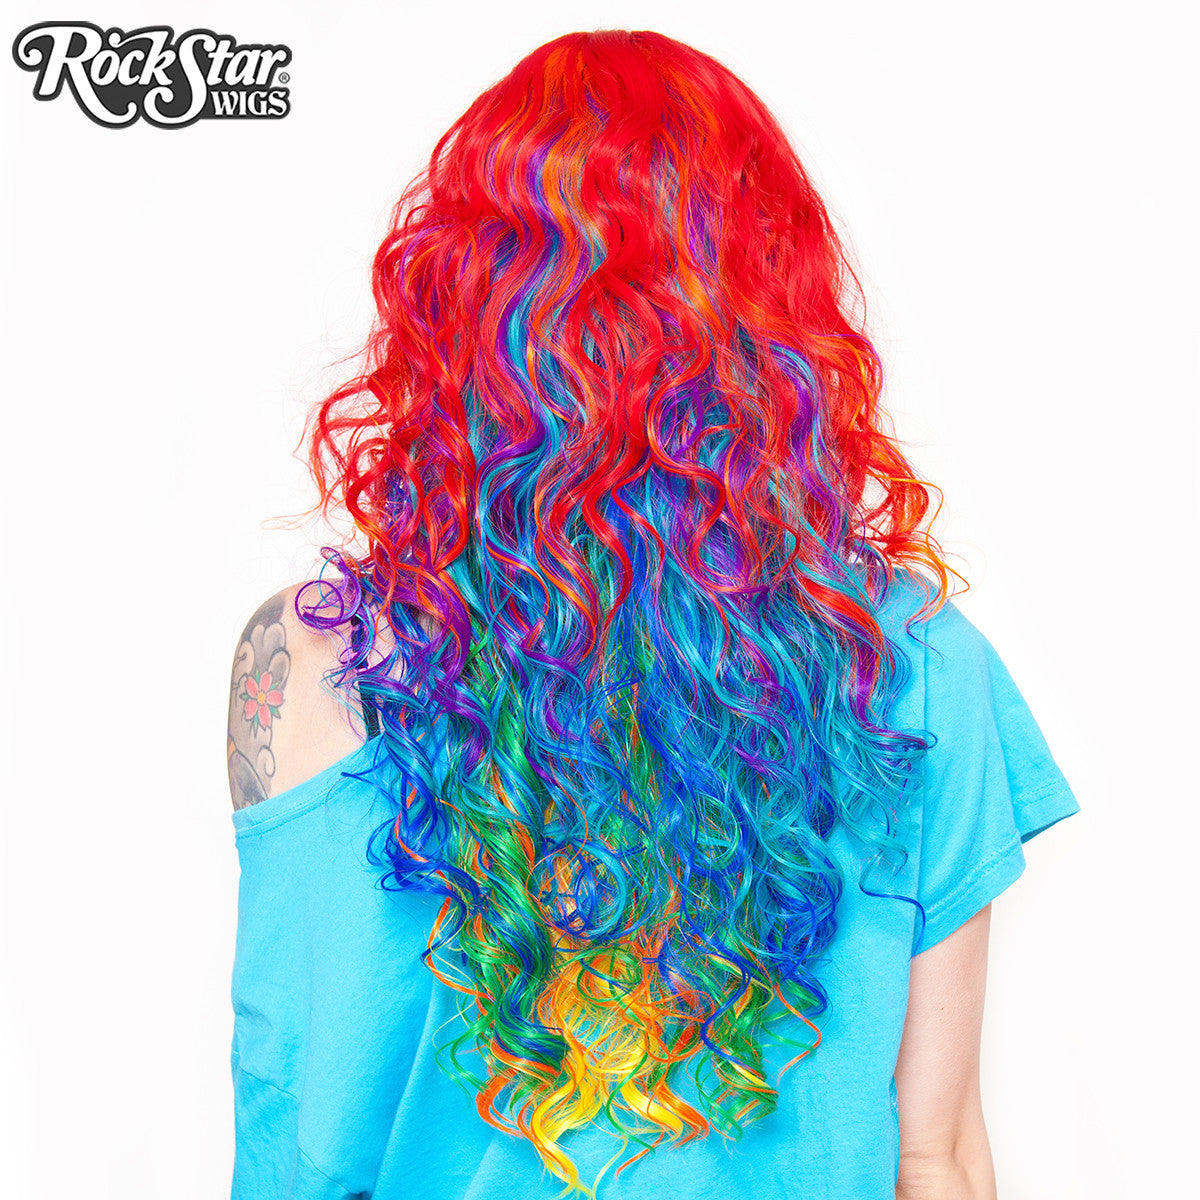 RockStar Wigs® <br> Rainbow Rock™ Collection - Hair Prism 1 -00218